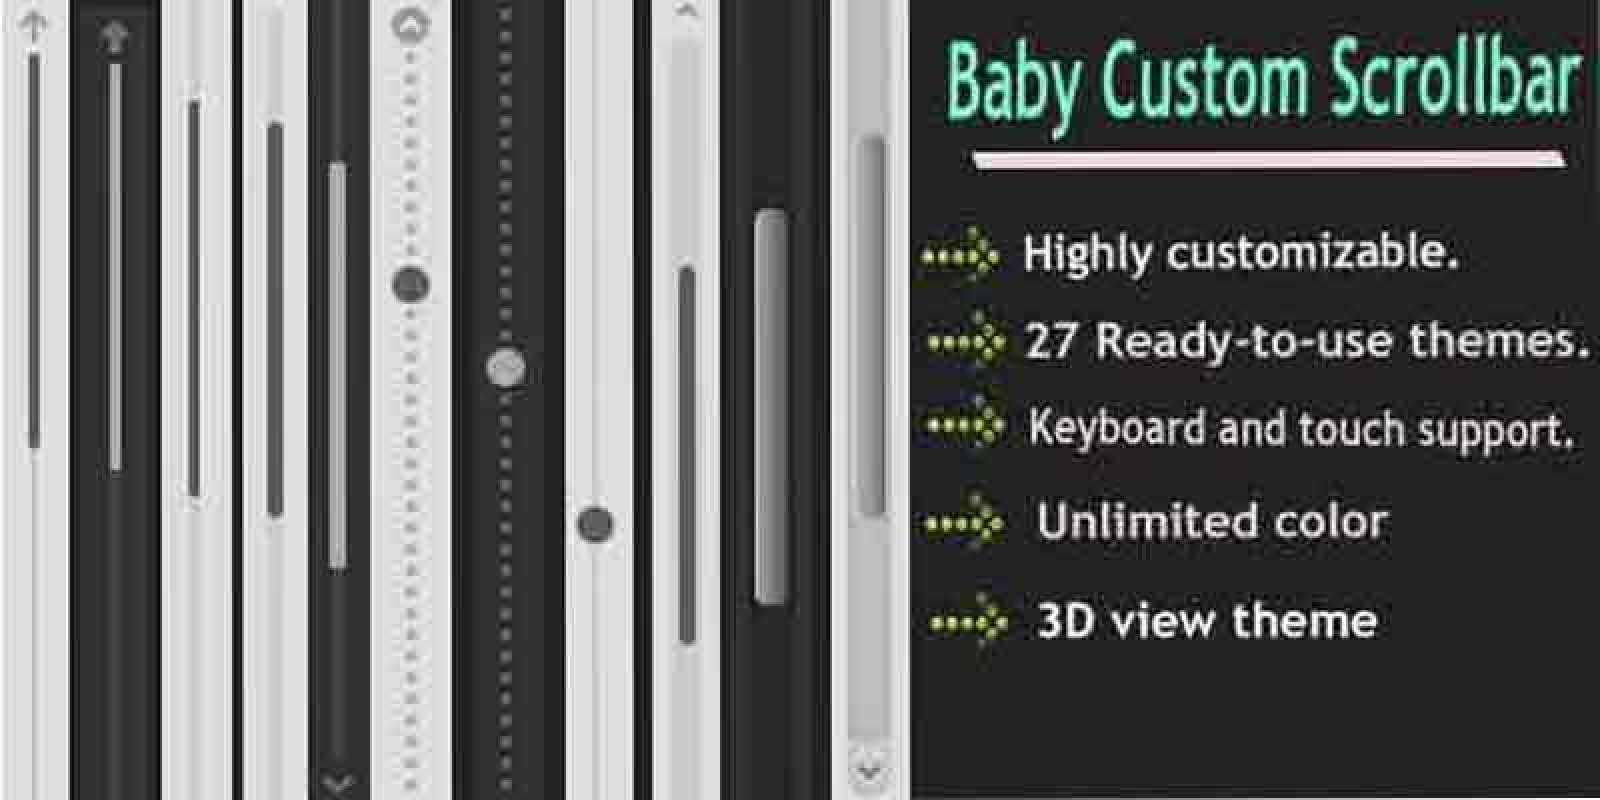 Baby Custom Scrollbar - WordPress Plugin